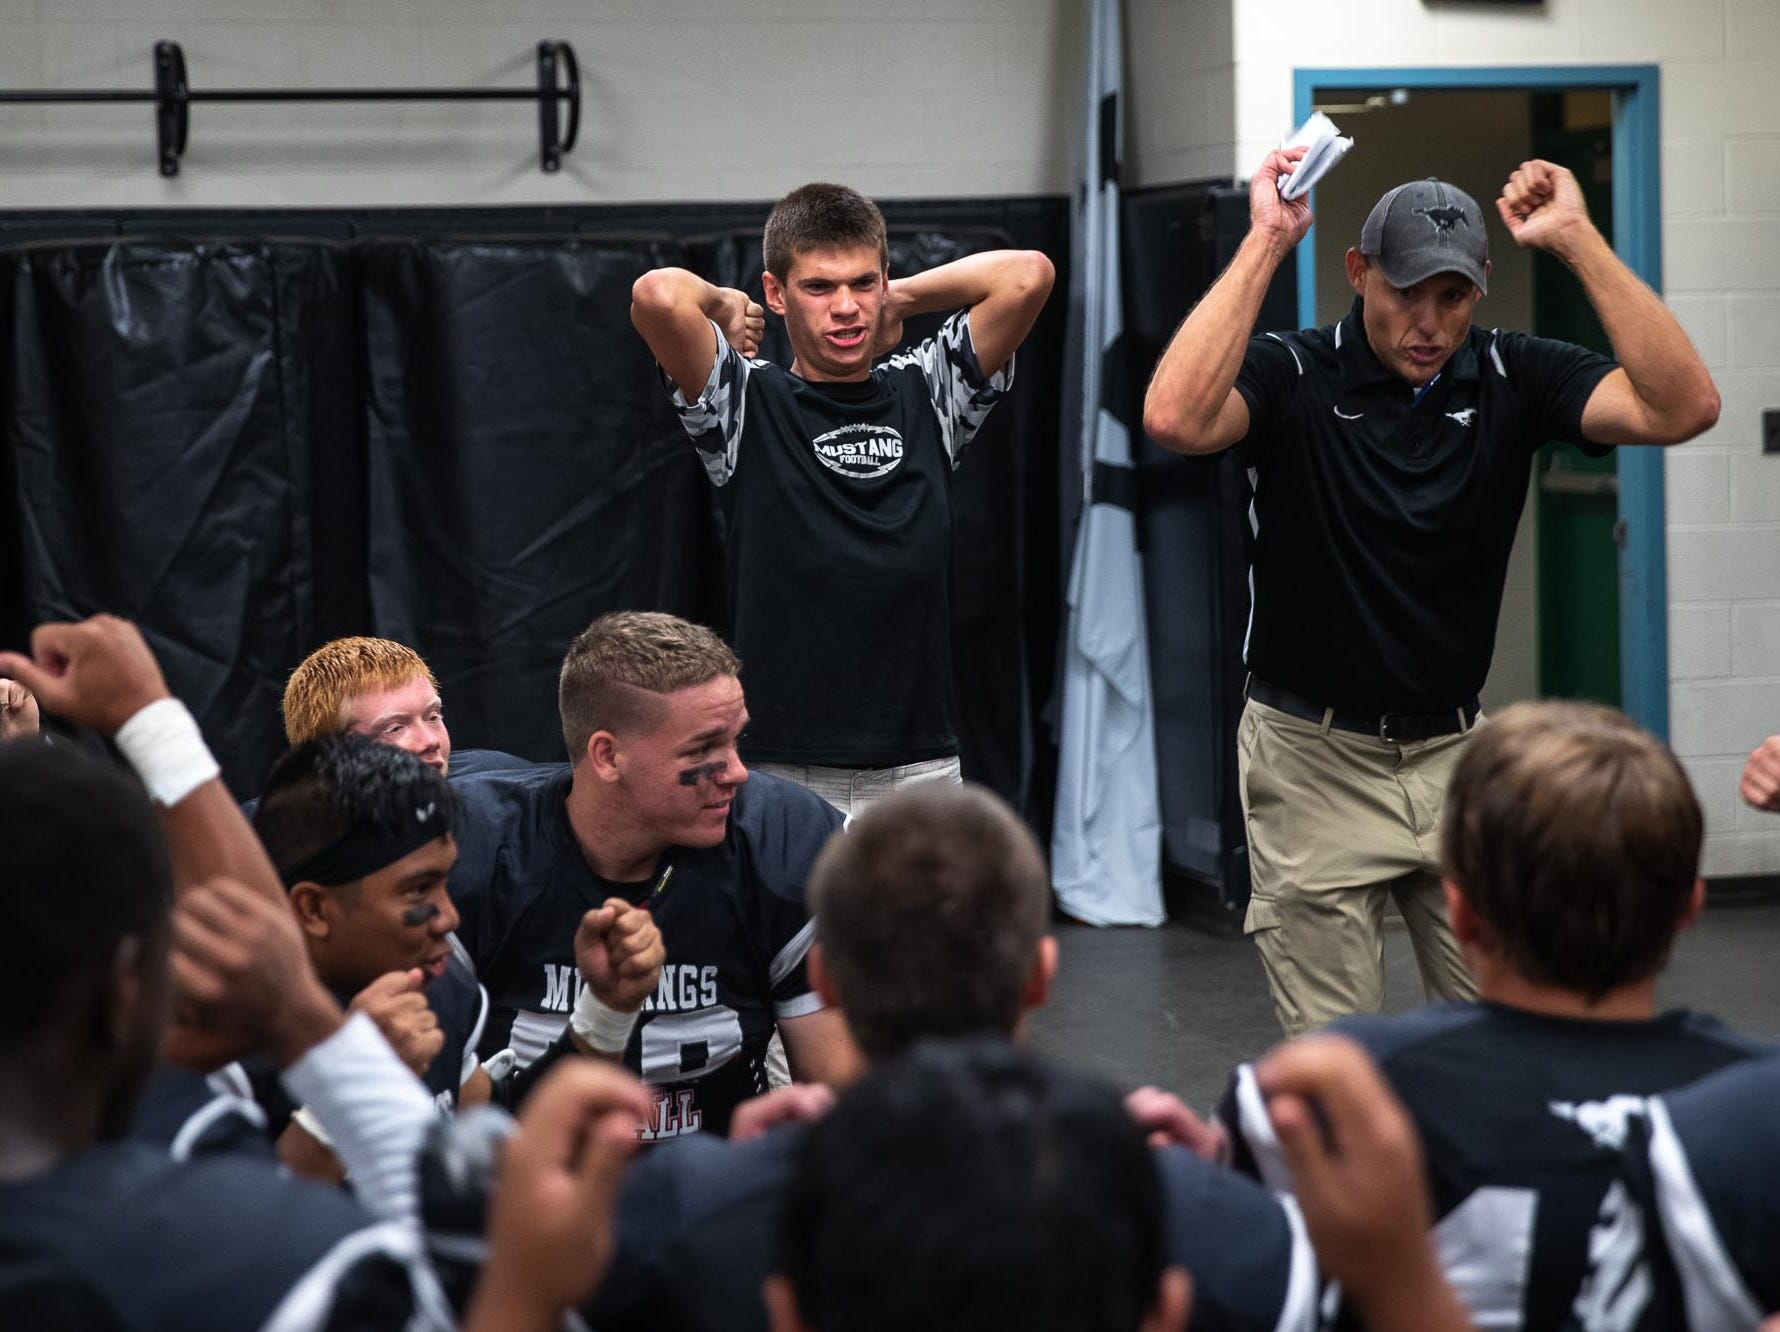 Headcoach Chris Heilman hypes up his team by pretending to ride a roller coaster in the locker room before a football game between South Western and Dallastown, Friday, Sept. 14, 2018, at South Western High School in Penn Township. Dallastown won, 35-7.